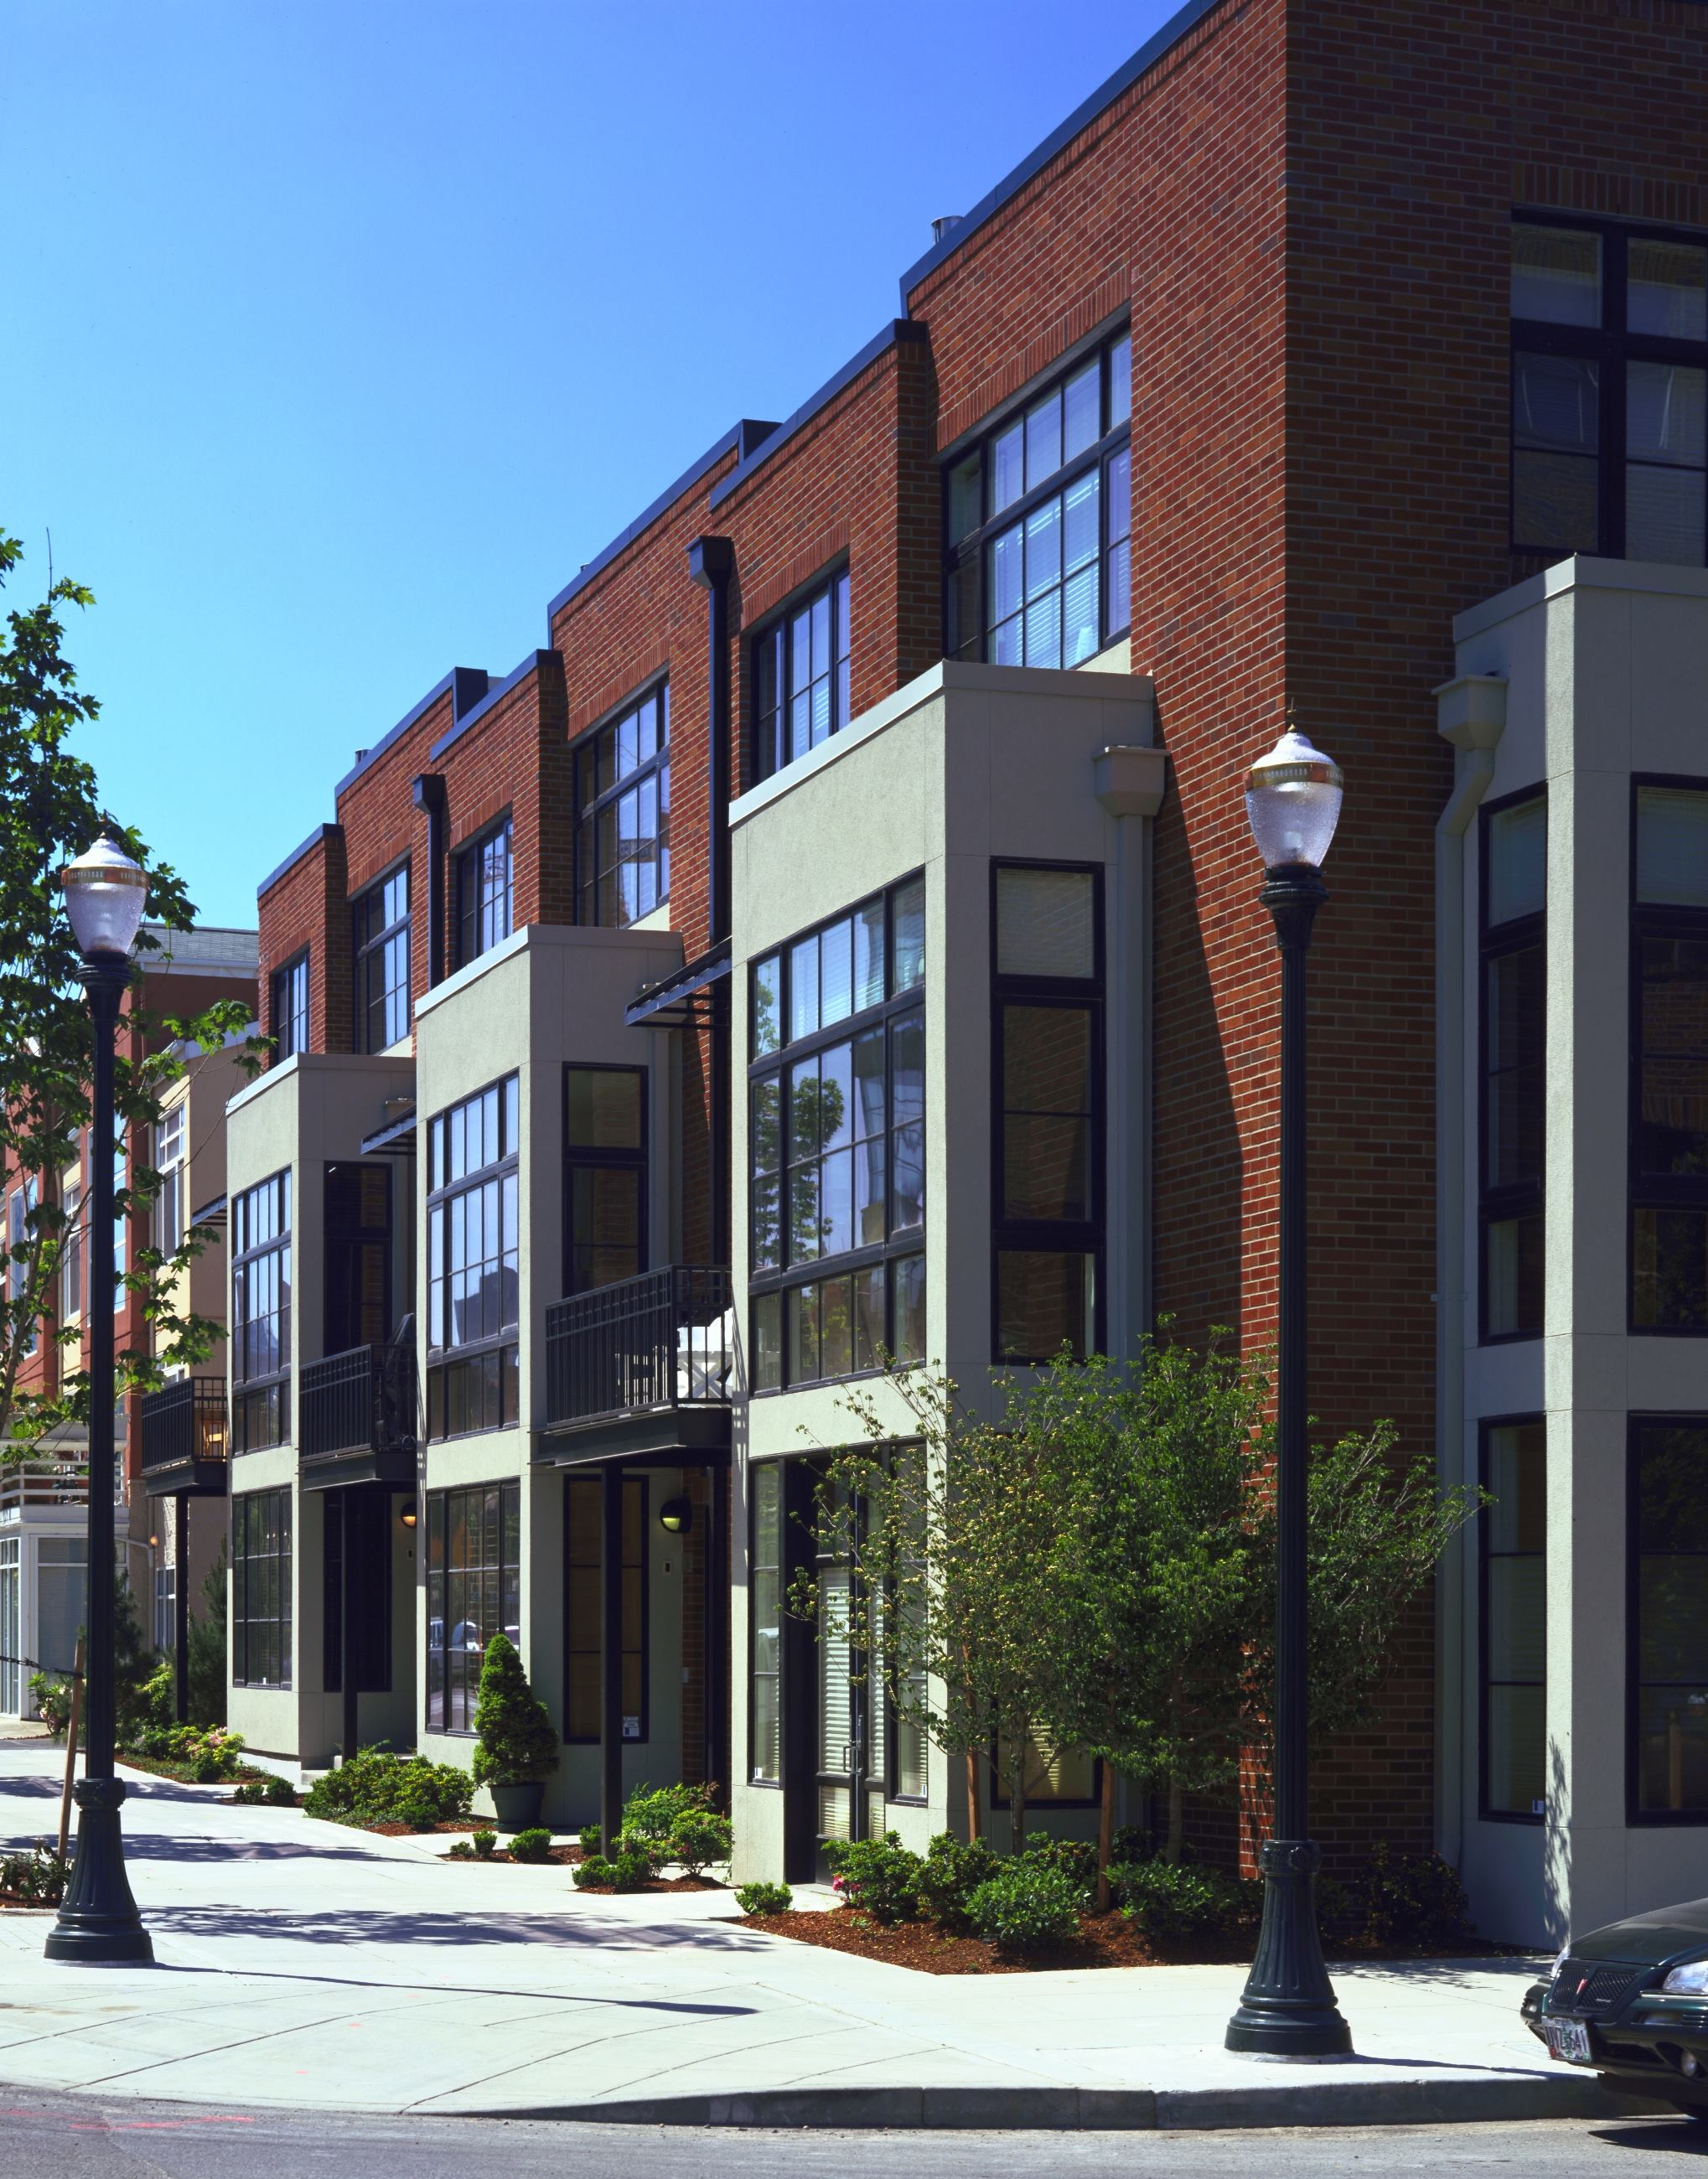 Johnson street townhomes portland ore residential for Home designers portland oregon